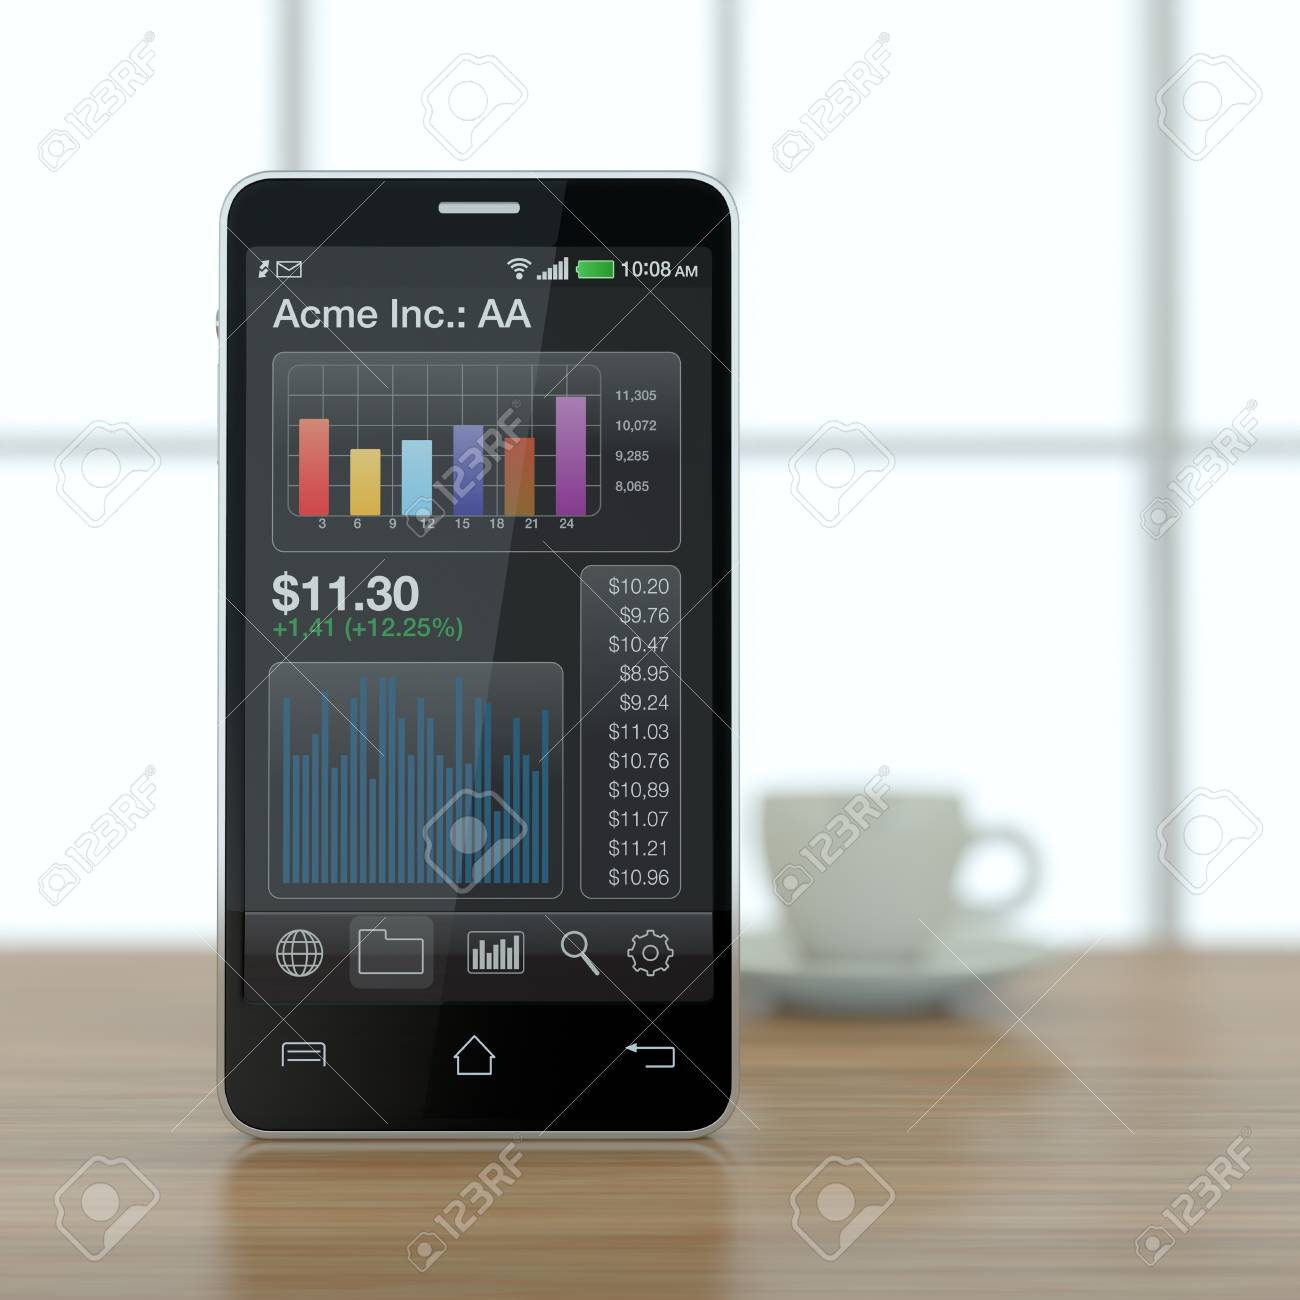 one modern smartphone with stock market app and a coffee cup (3d render) Stock Photo - 17954173